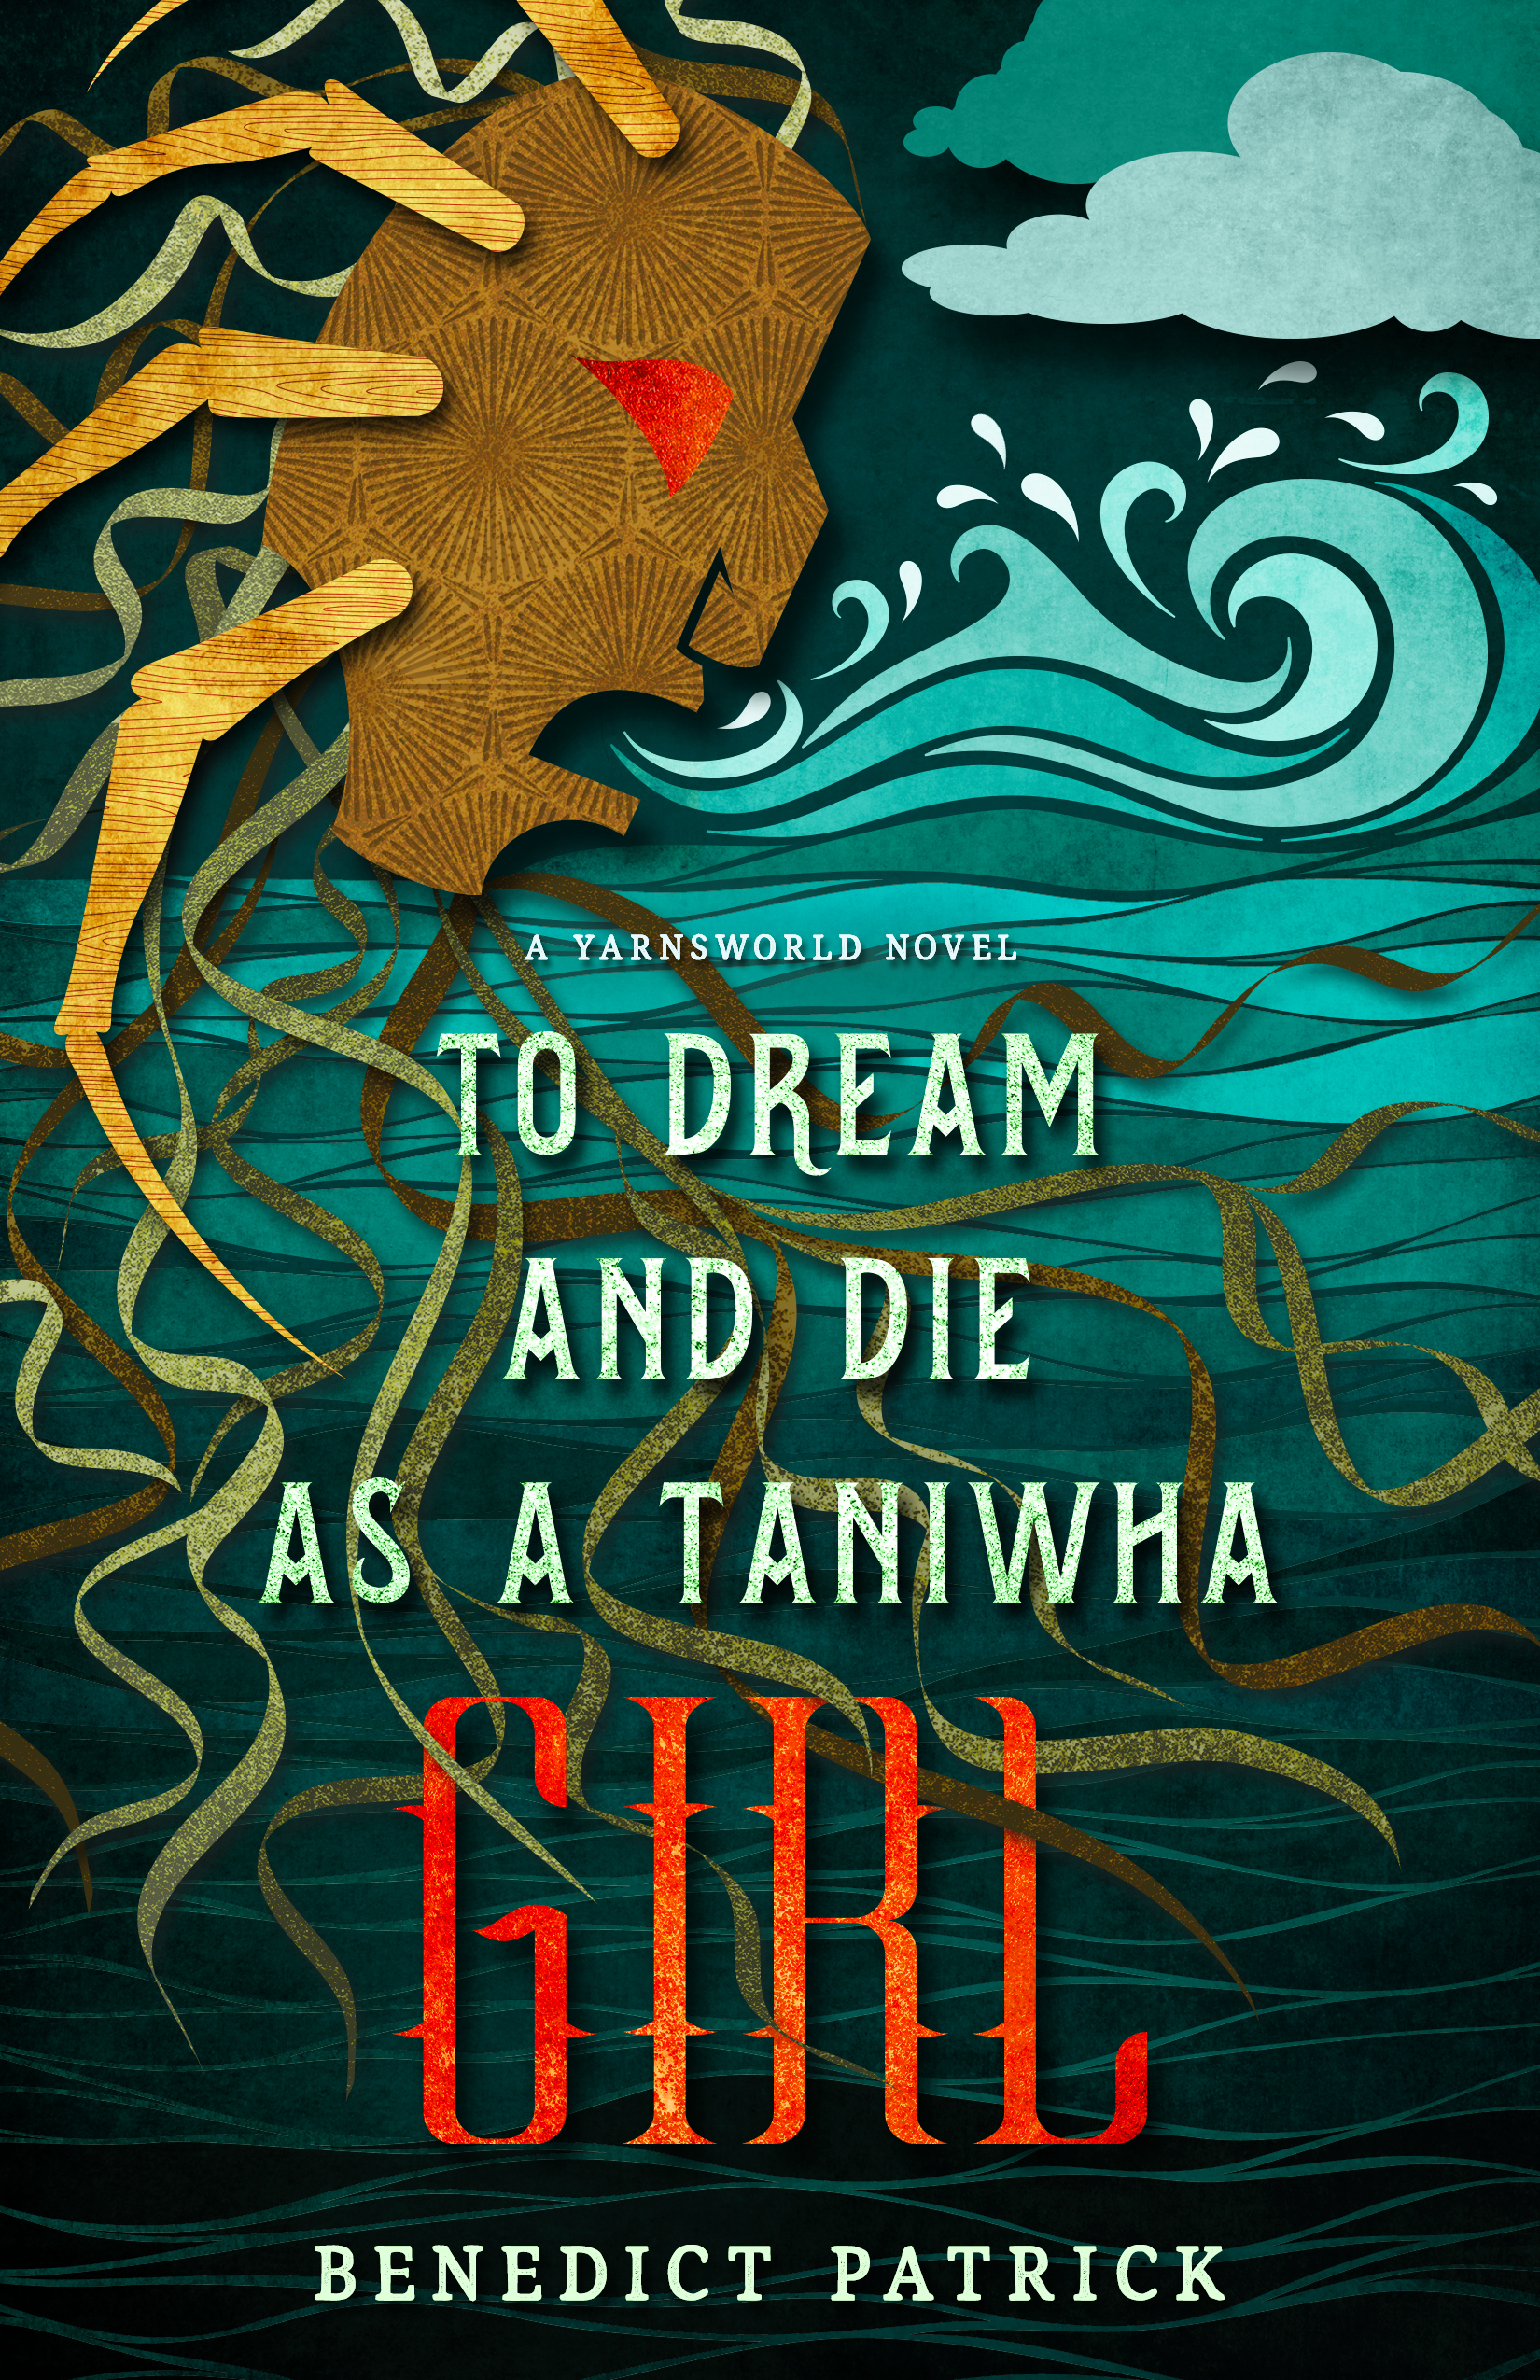 [PDF] [EPUB] To Dream and Die as a Taniwha Girl (Yarnsworld #5) Download by Benedict Patrick